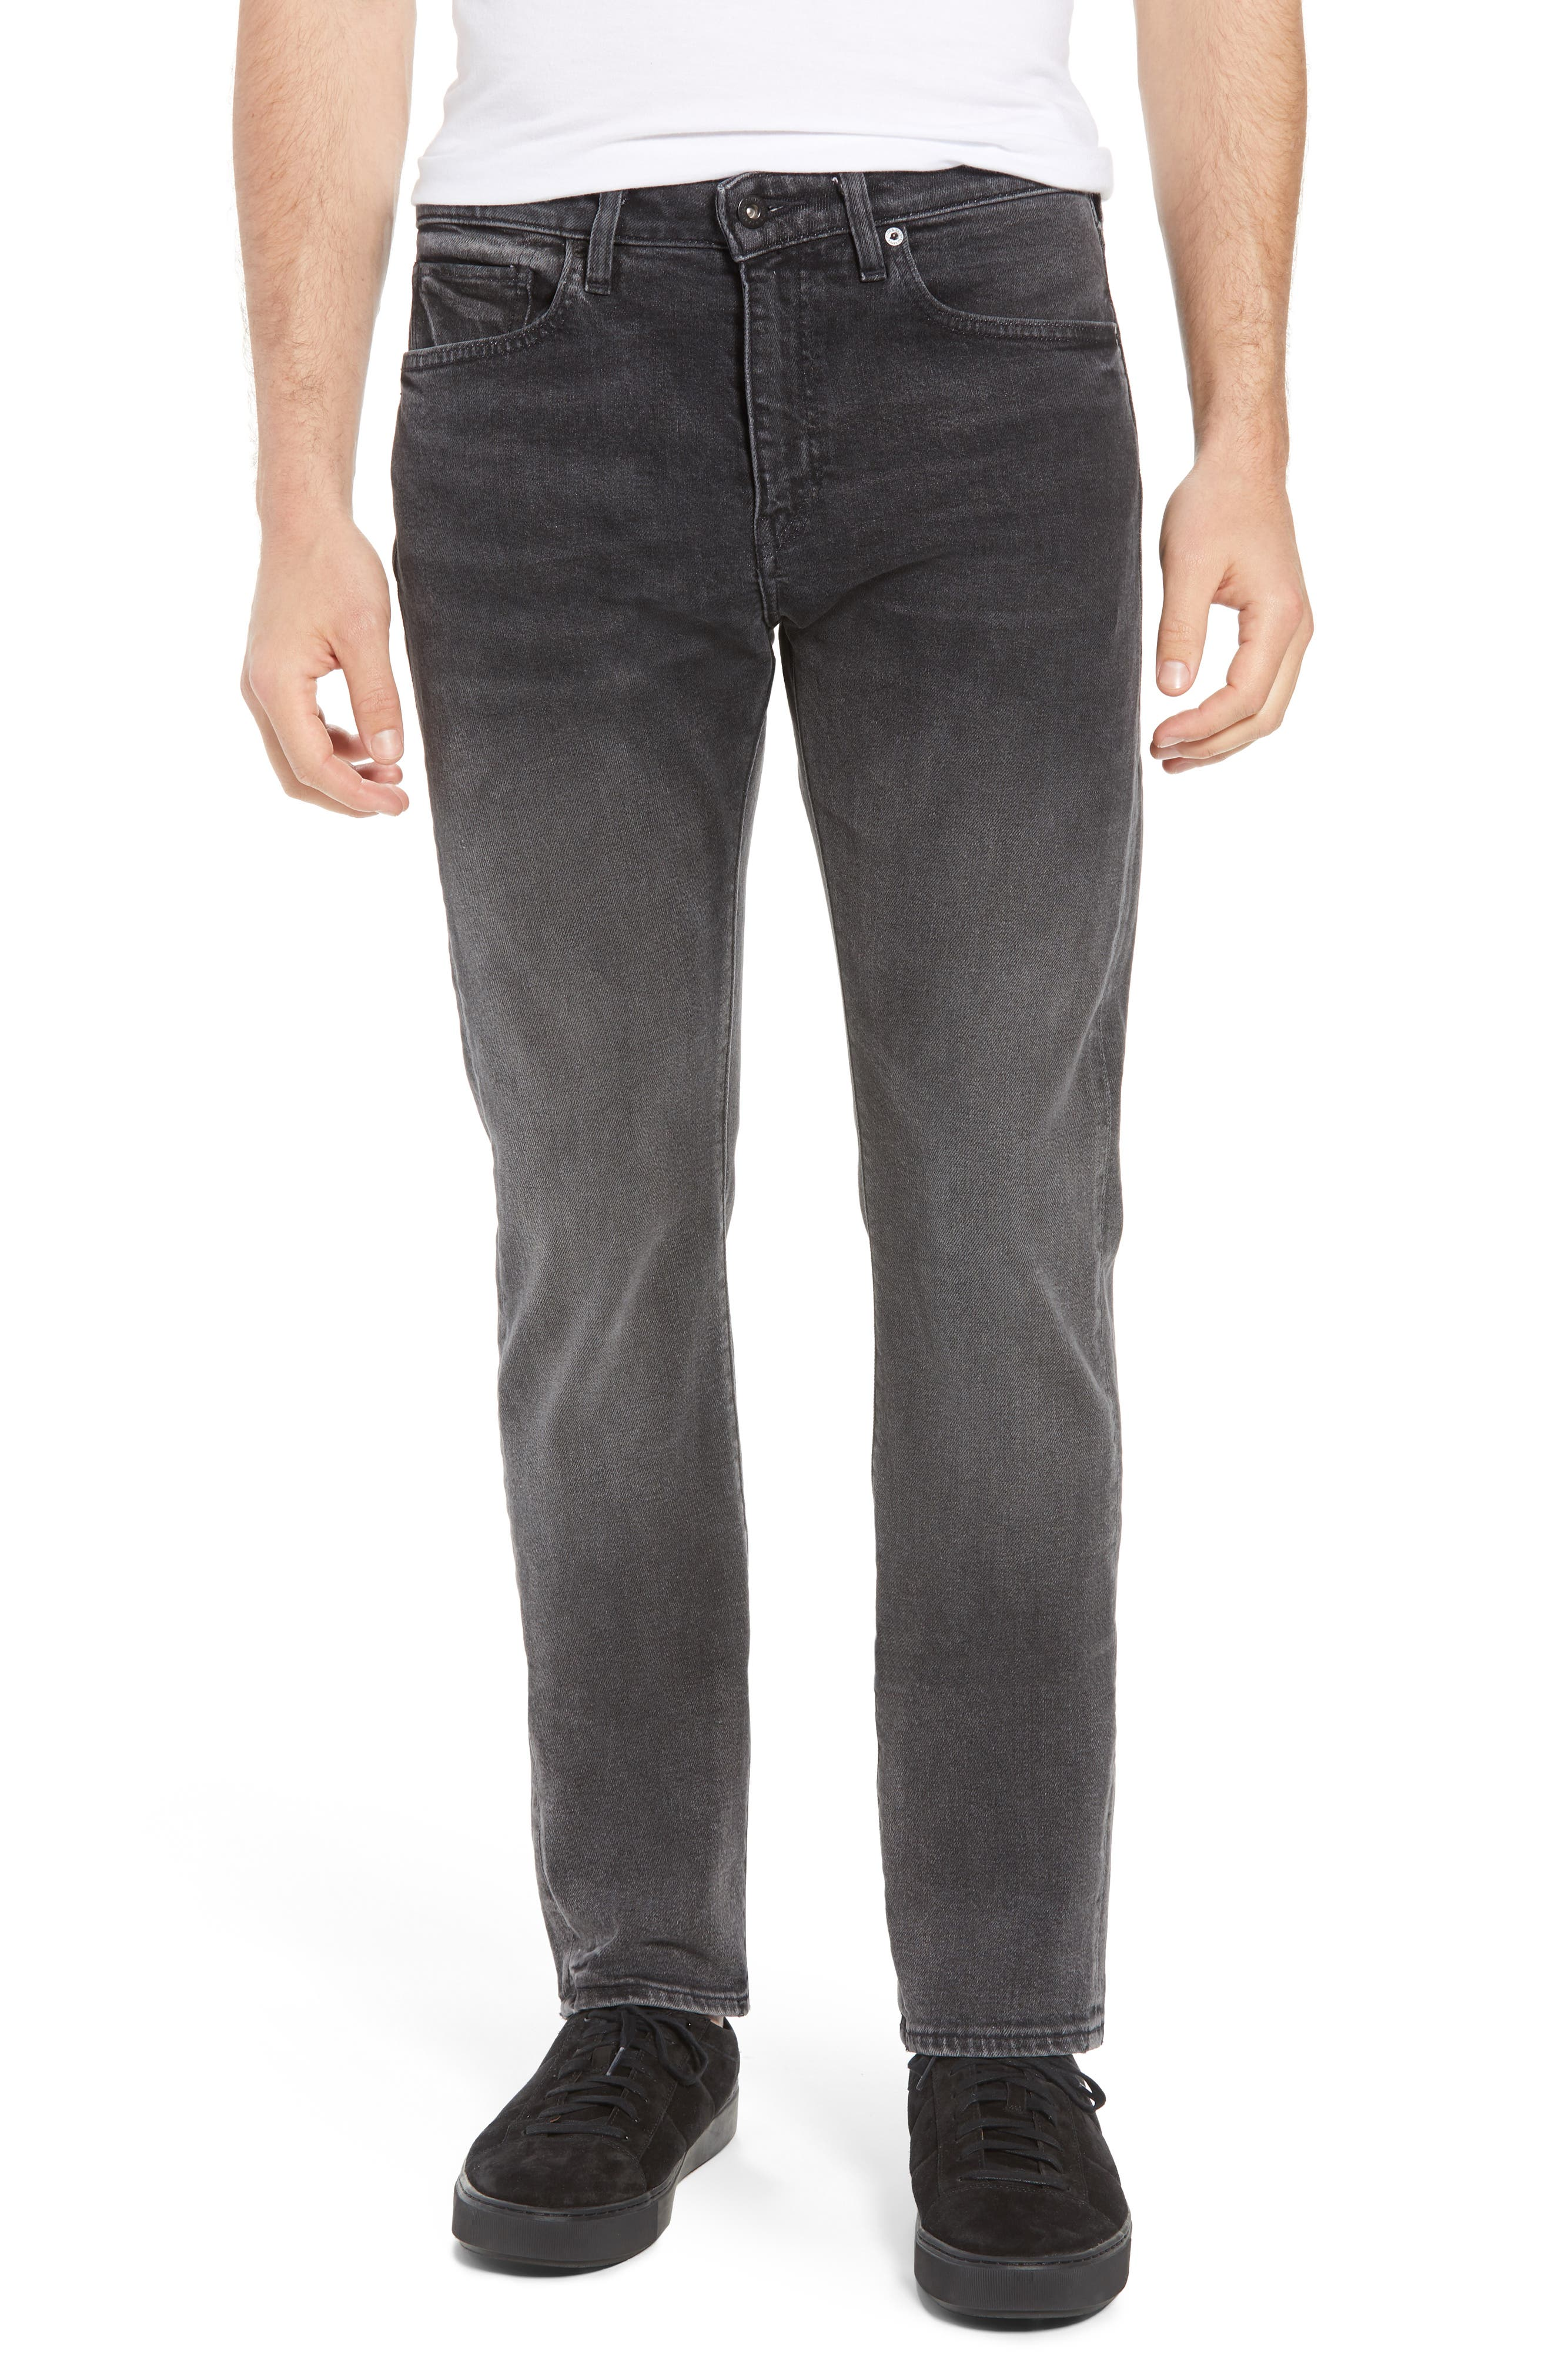 Tack Slim Fit Jeans,                             Main thumbnail 1, color,                             BLACK ICE